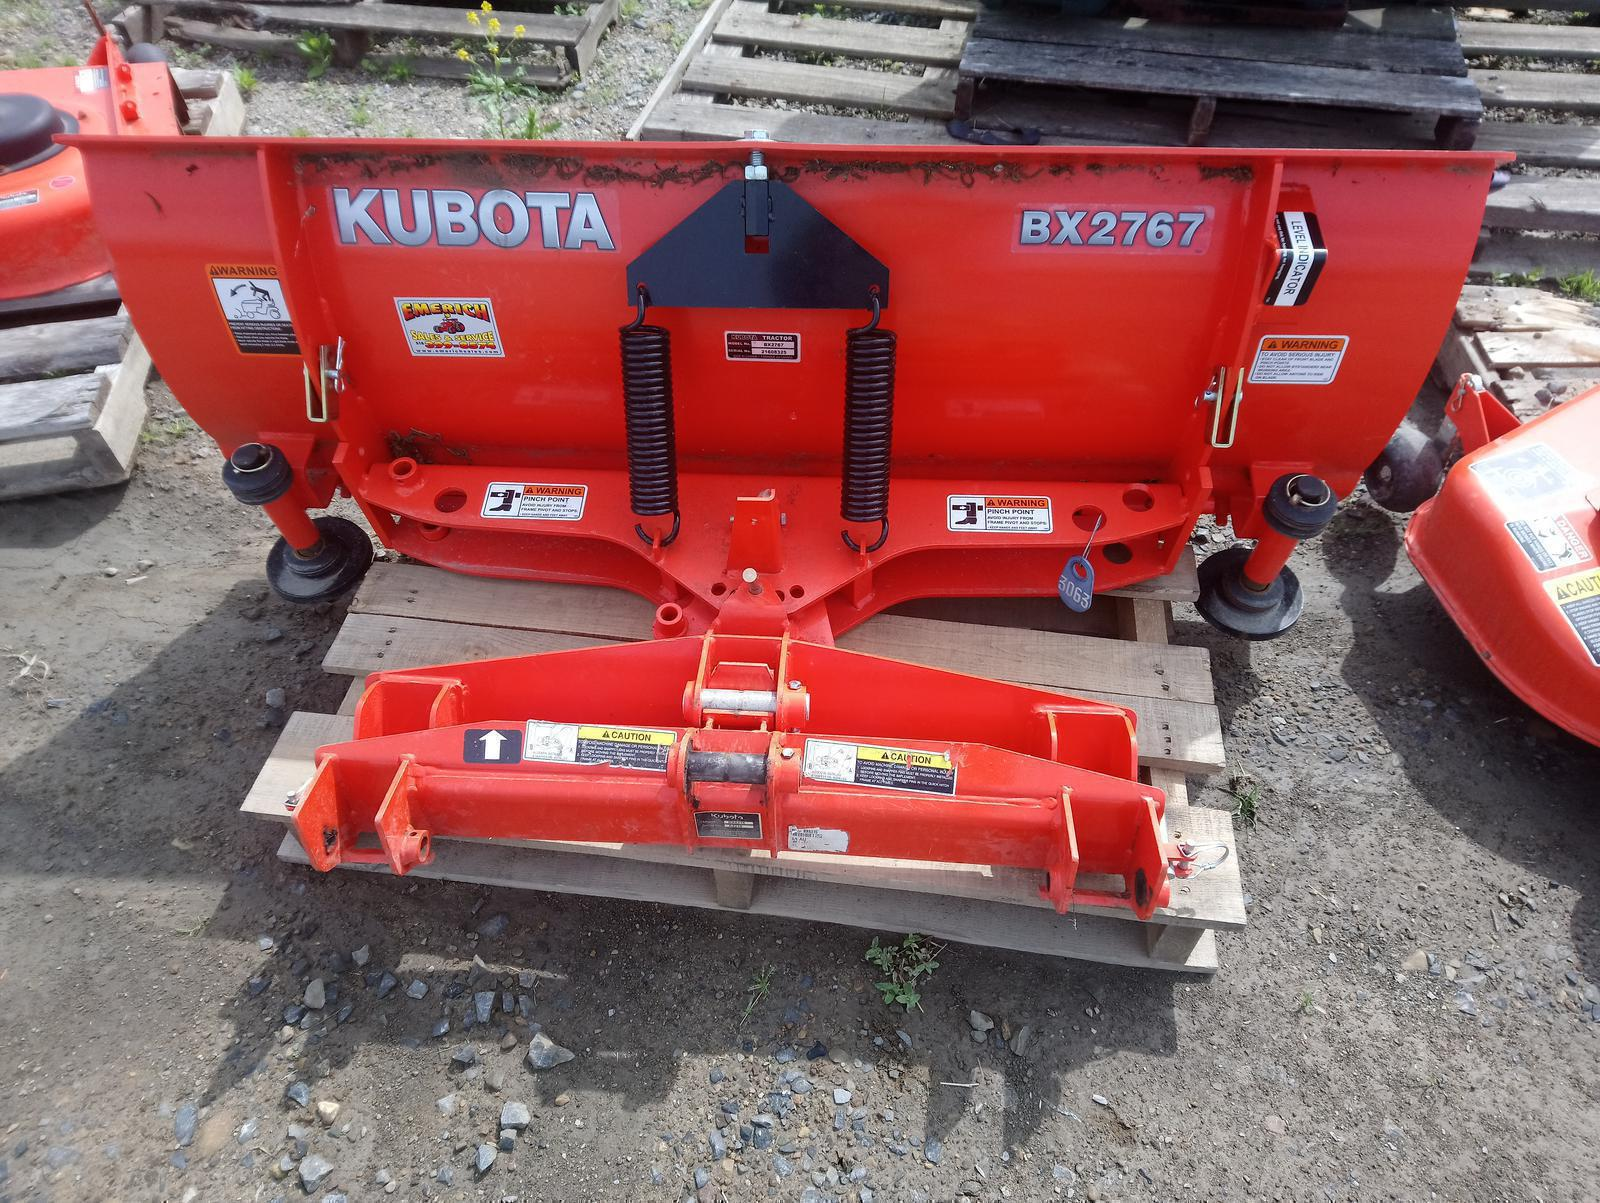 Inventory from Kubota Emerich Sales & Service, Inc